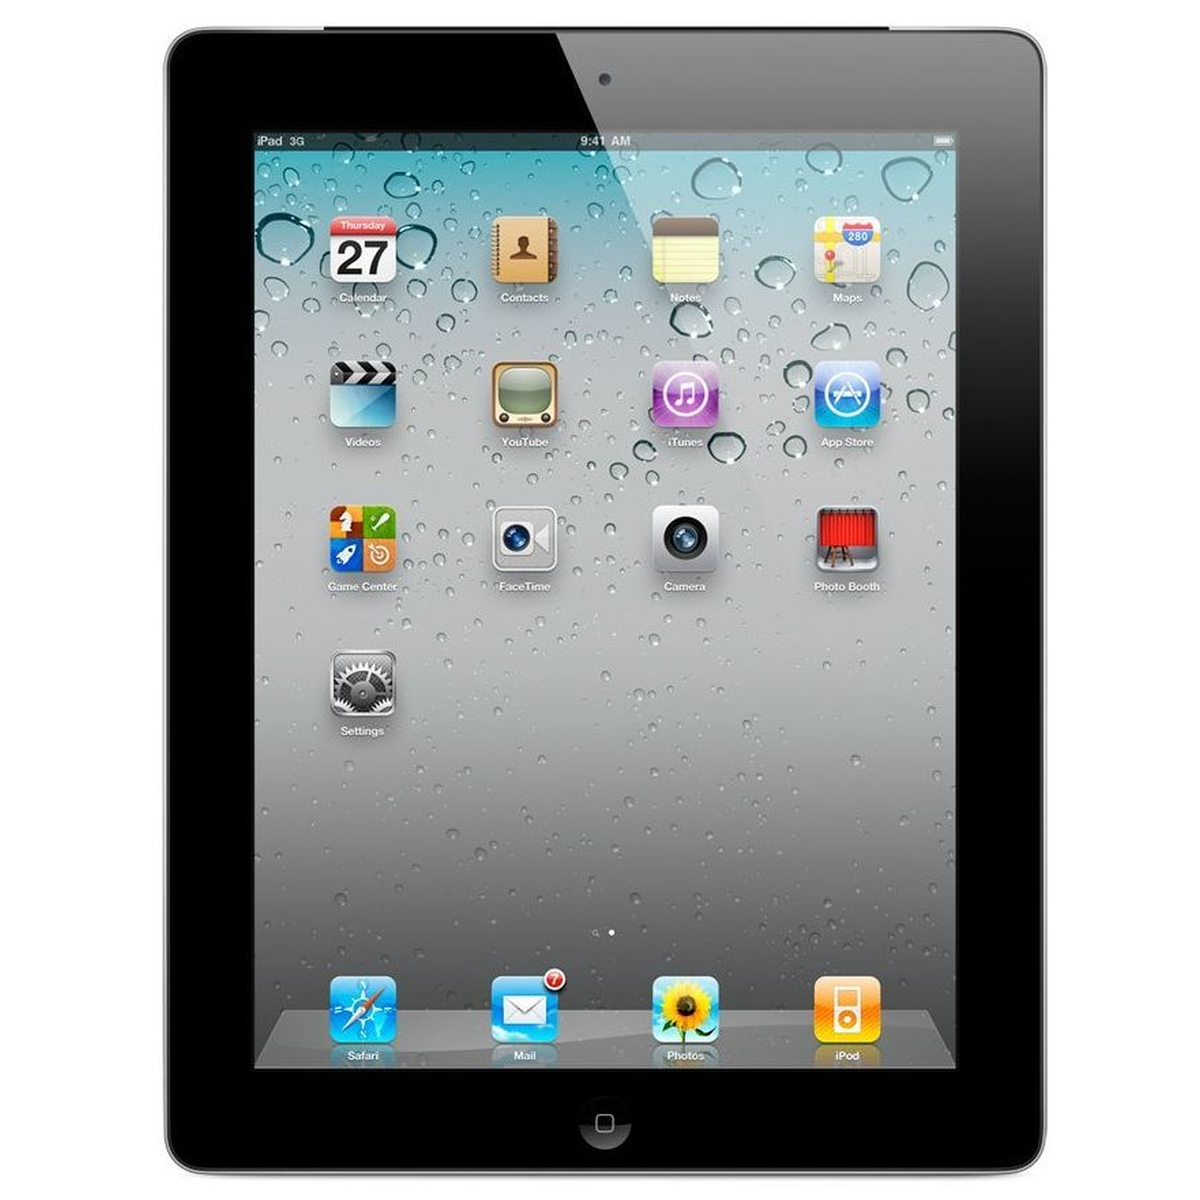 Apple iPad 2 MC774FD/A Tablet-PC 3G Wifi 32GB schwarz #gut